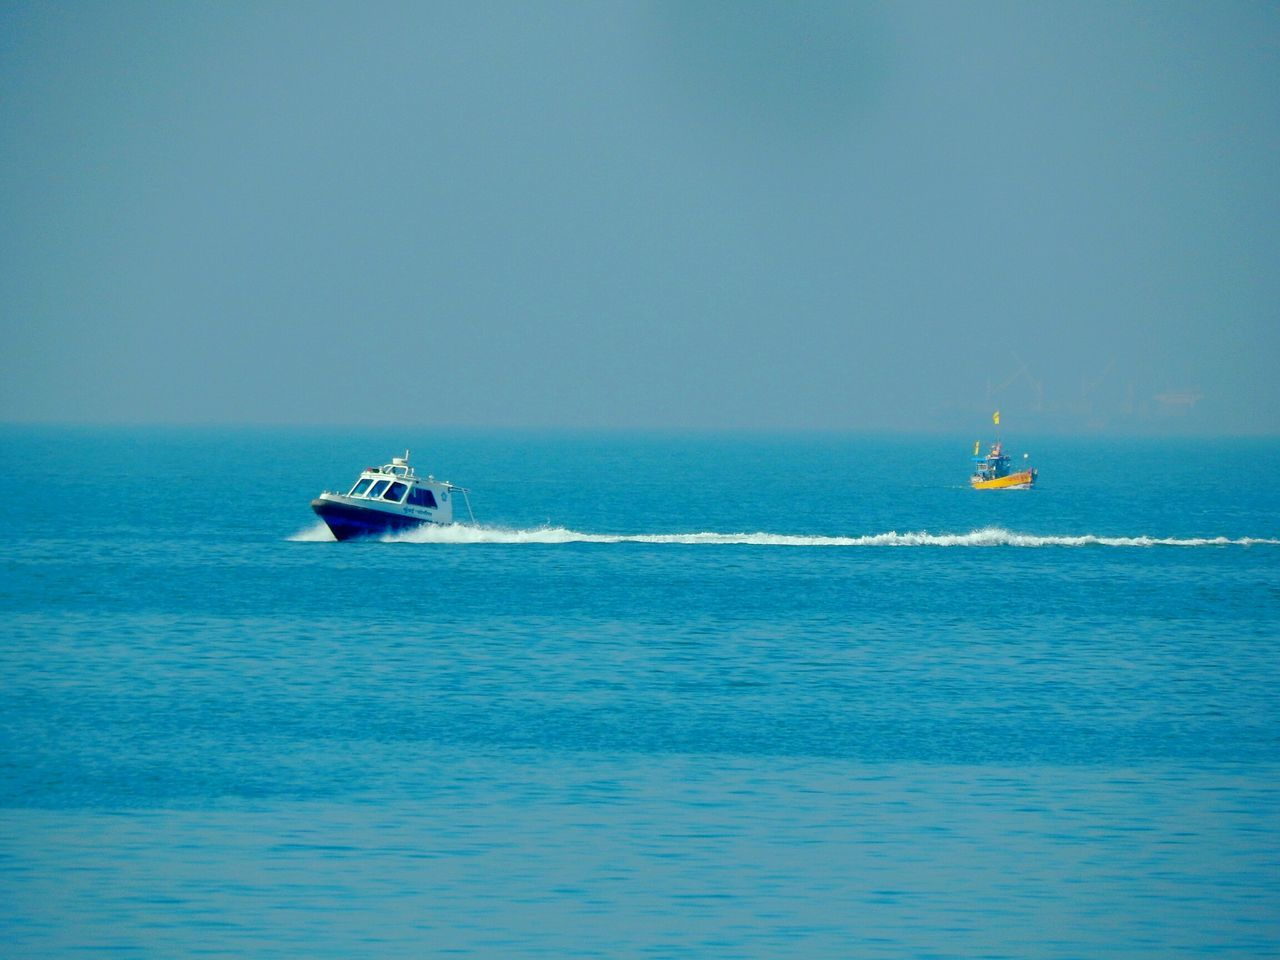 sea, nautical vessel, transportation, water, nature, mode of transport, blue, waterfront, horizon over water, outdoors, day, beauty in nature, sailing, scenics, jet boat, clear sky, no people, sky